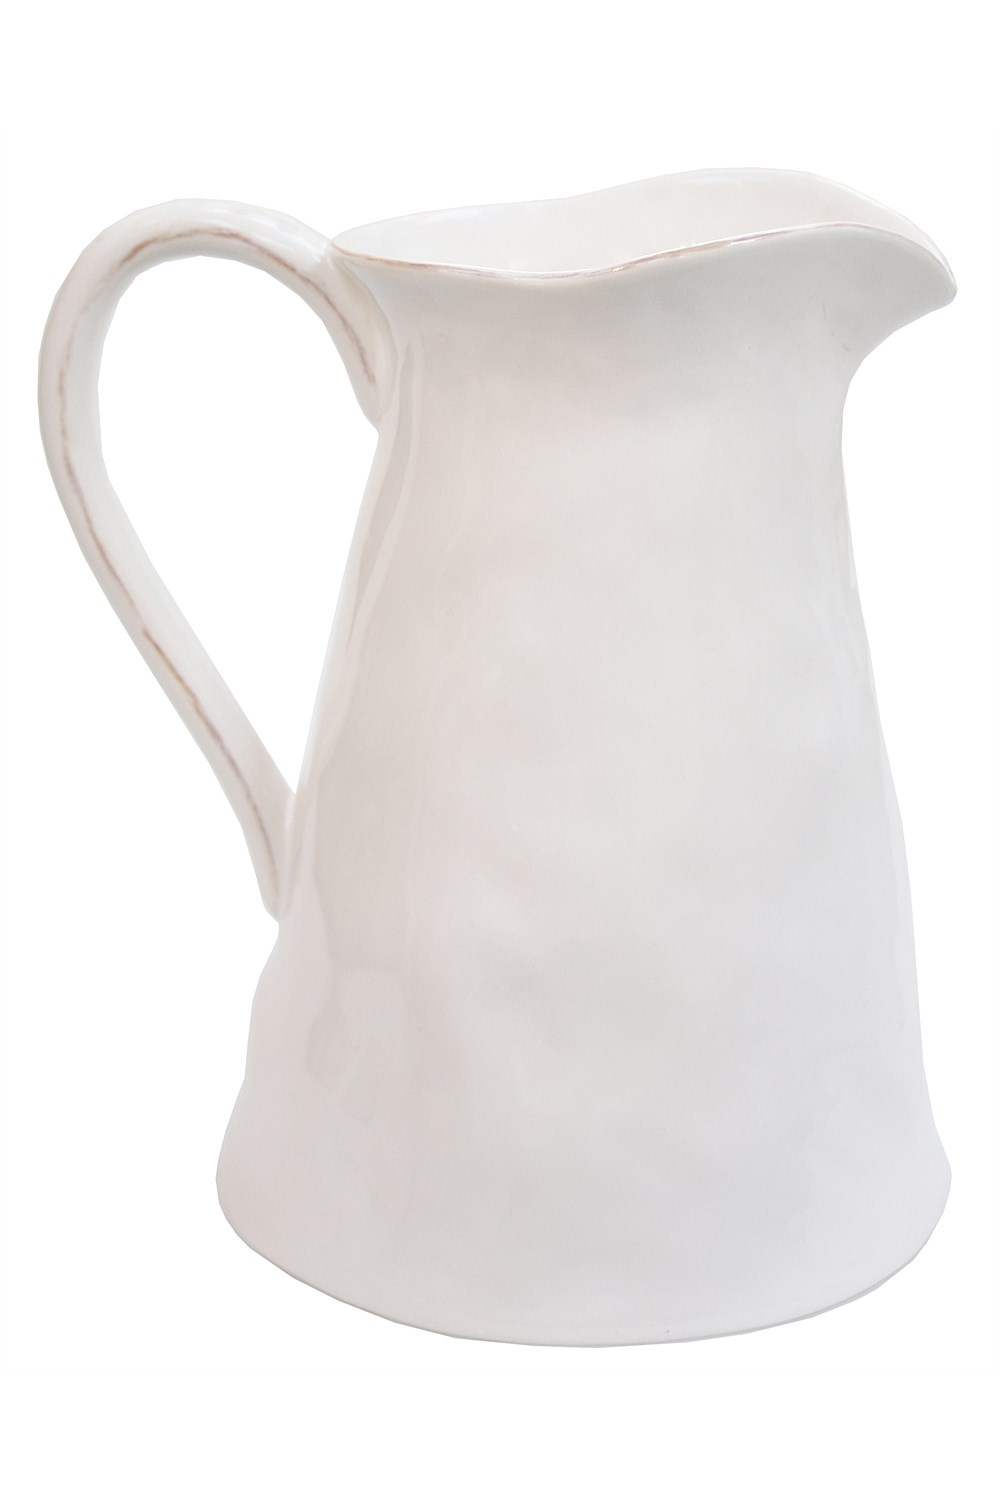 Large White Pitcher